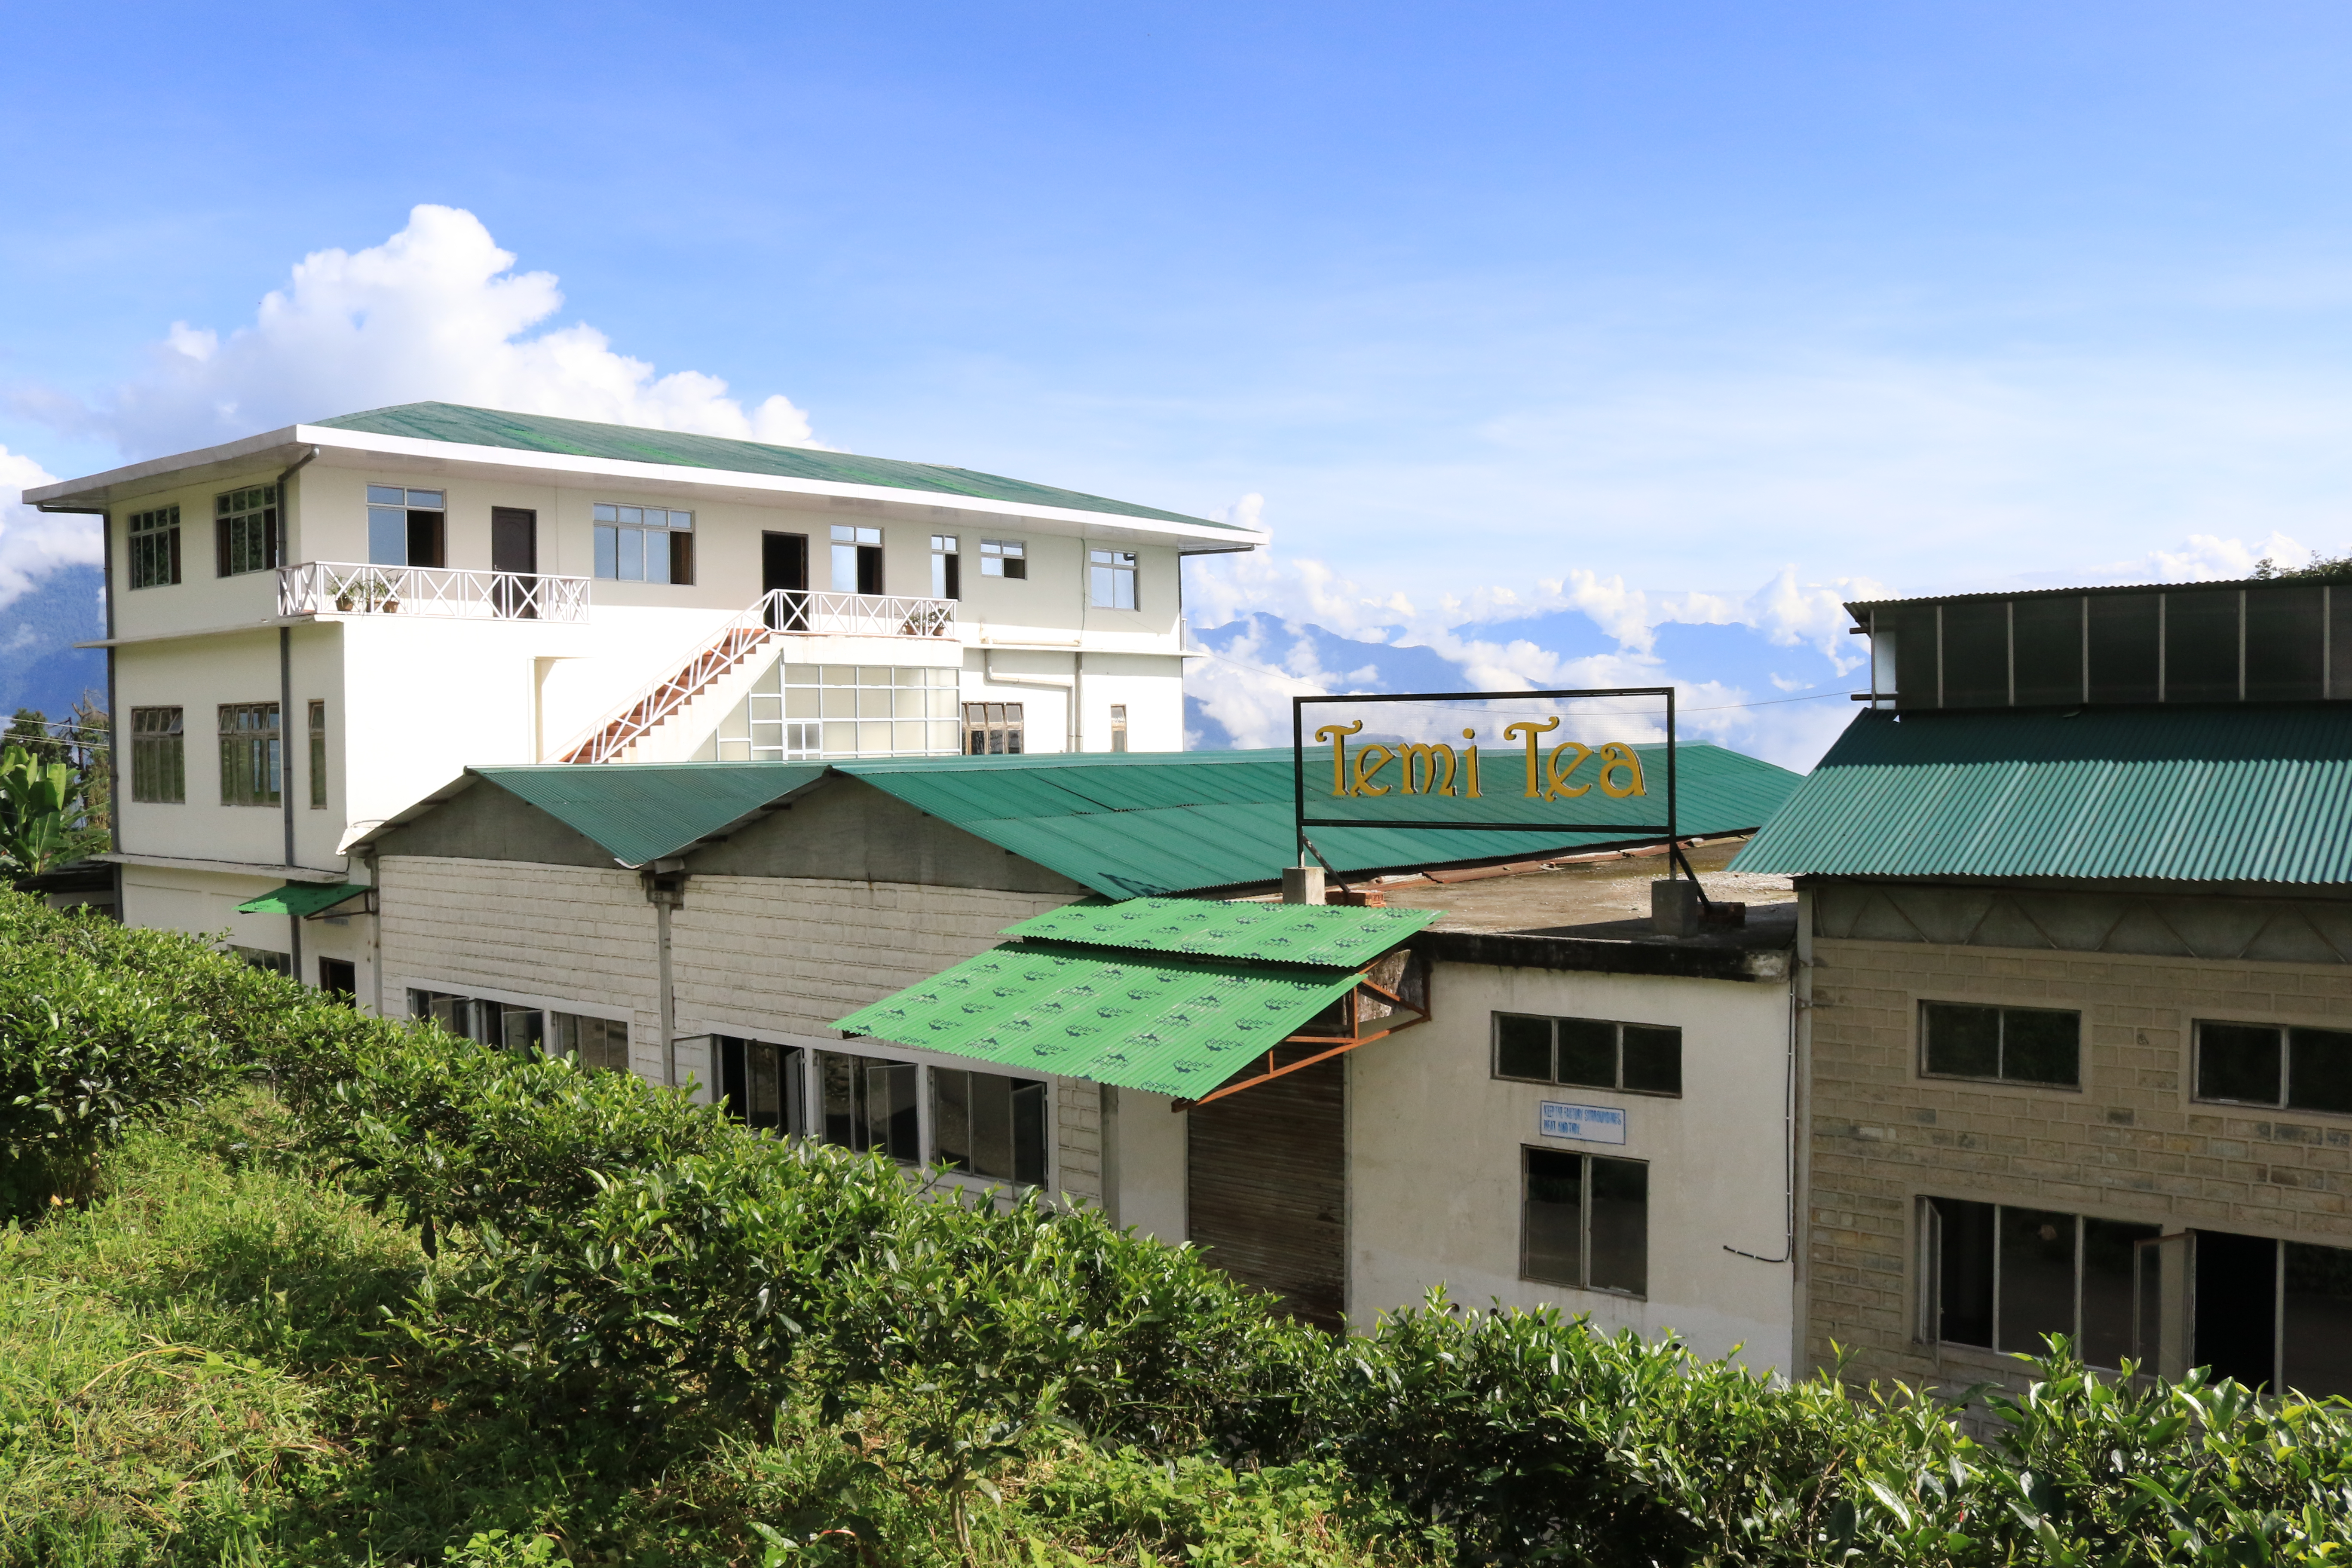 Temi tea offers accommodation options within the tea estate and has also developed various homestay facilities around